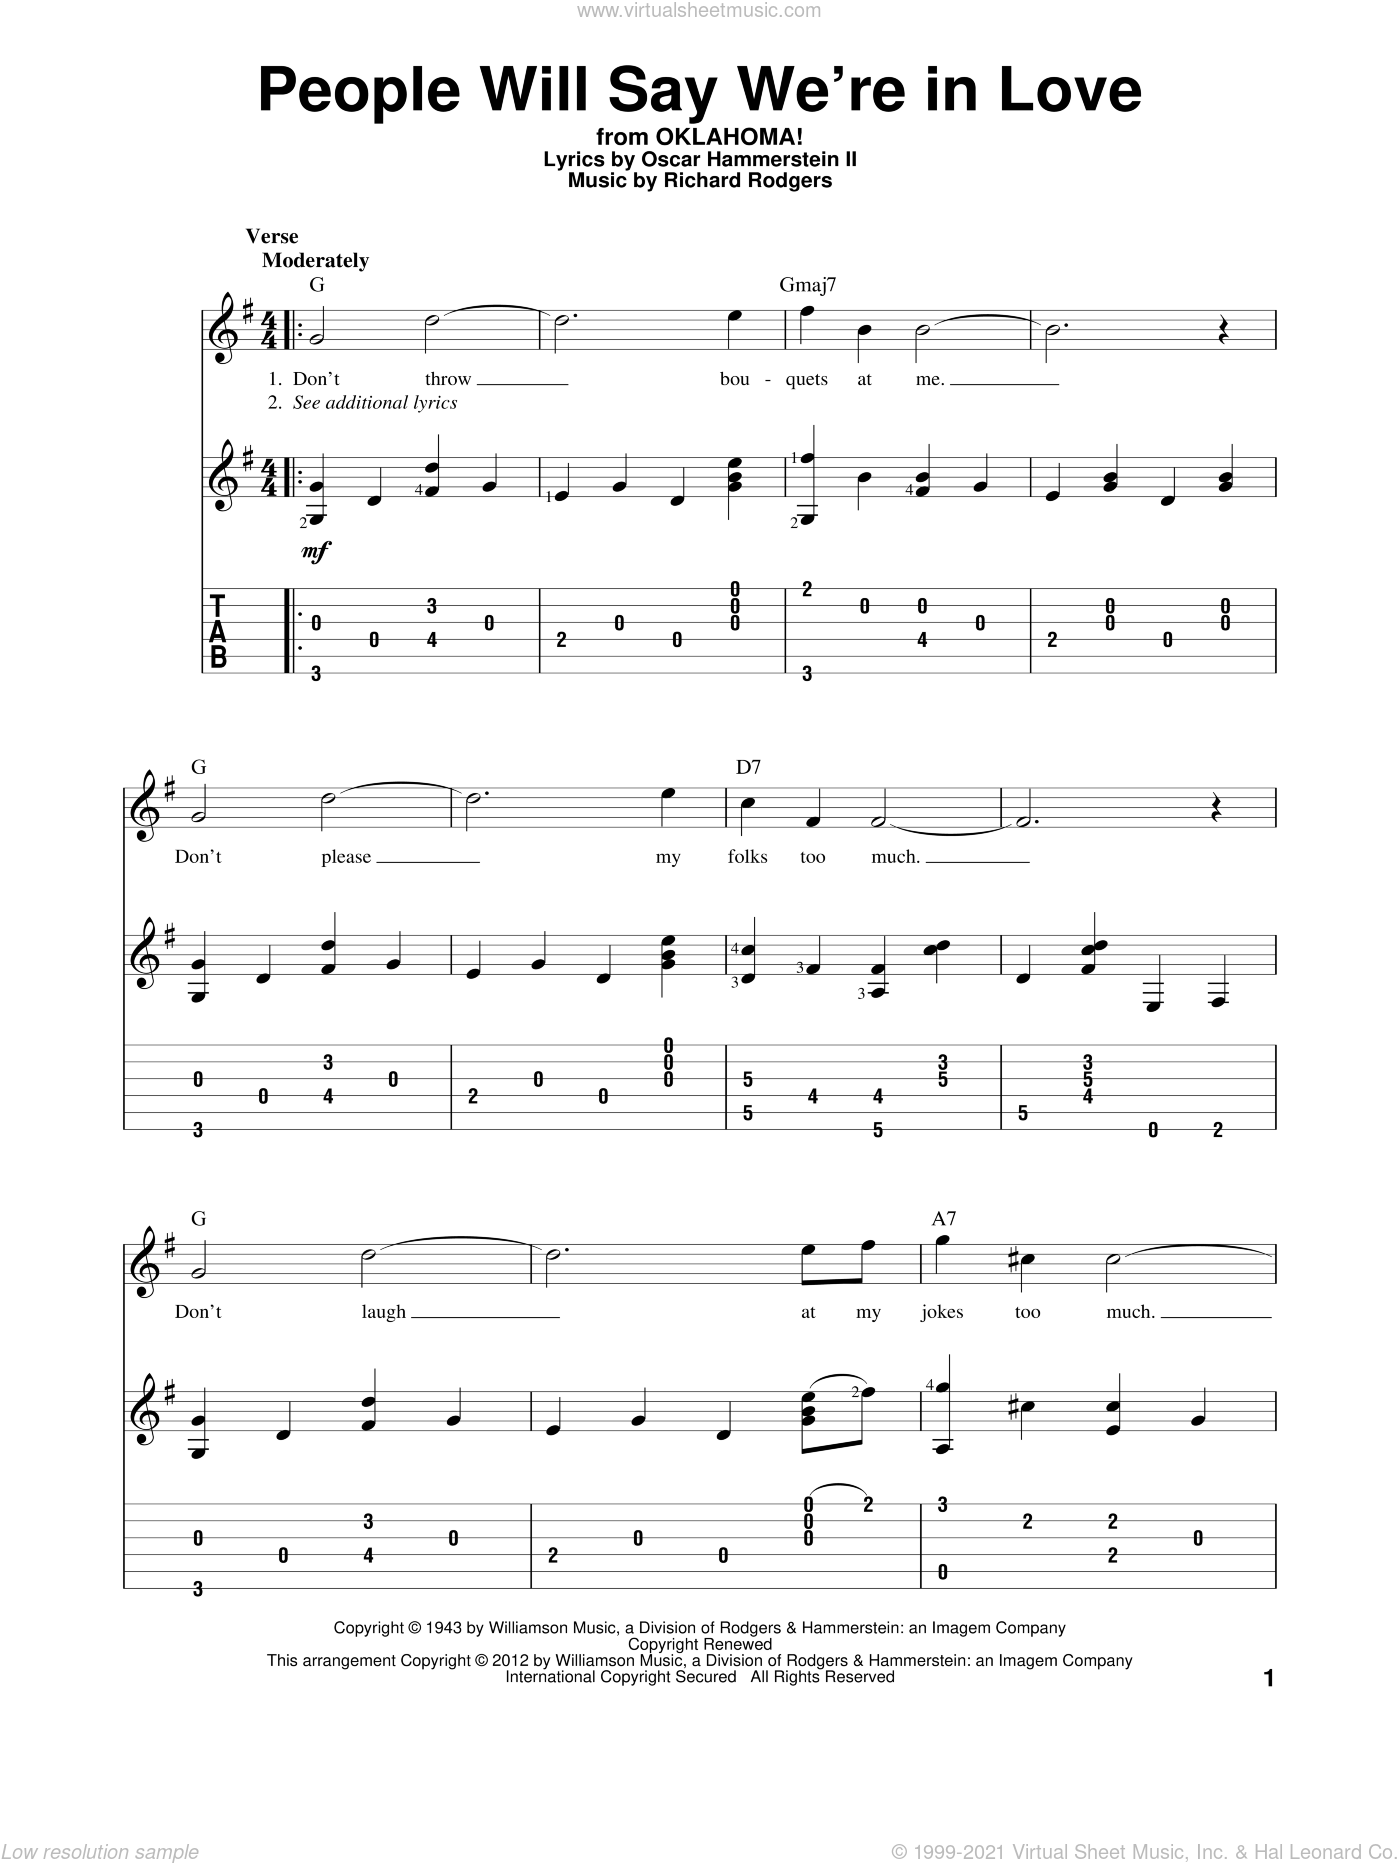 People Will Say We're In Love sheet music for guitar solo by Richard Rodgers, Rodgers & Hammerstein and Oscar II Hammerstein. Score Image Preview.